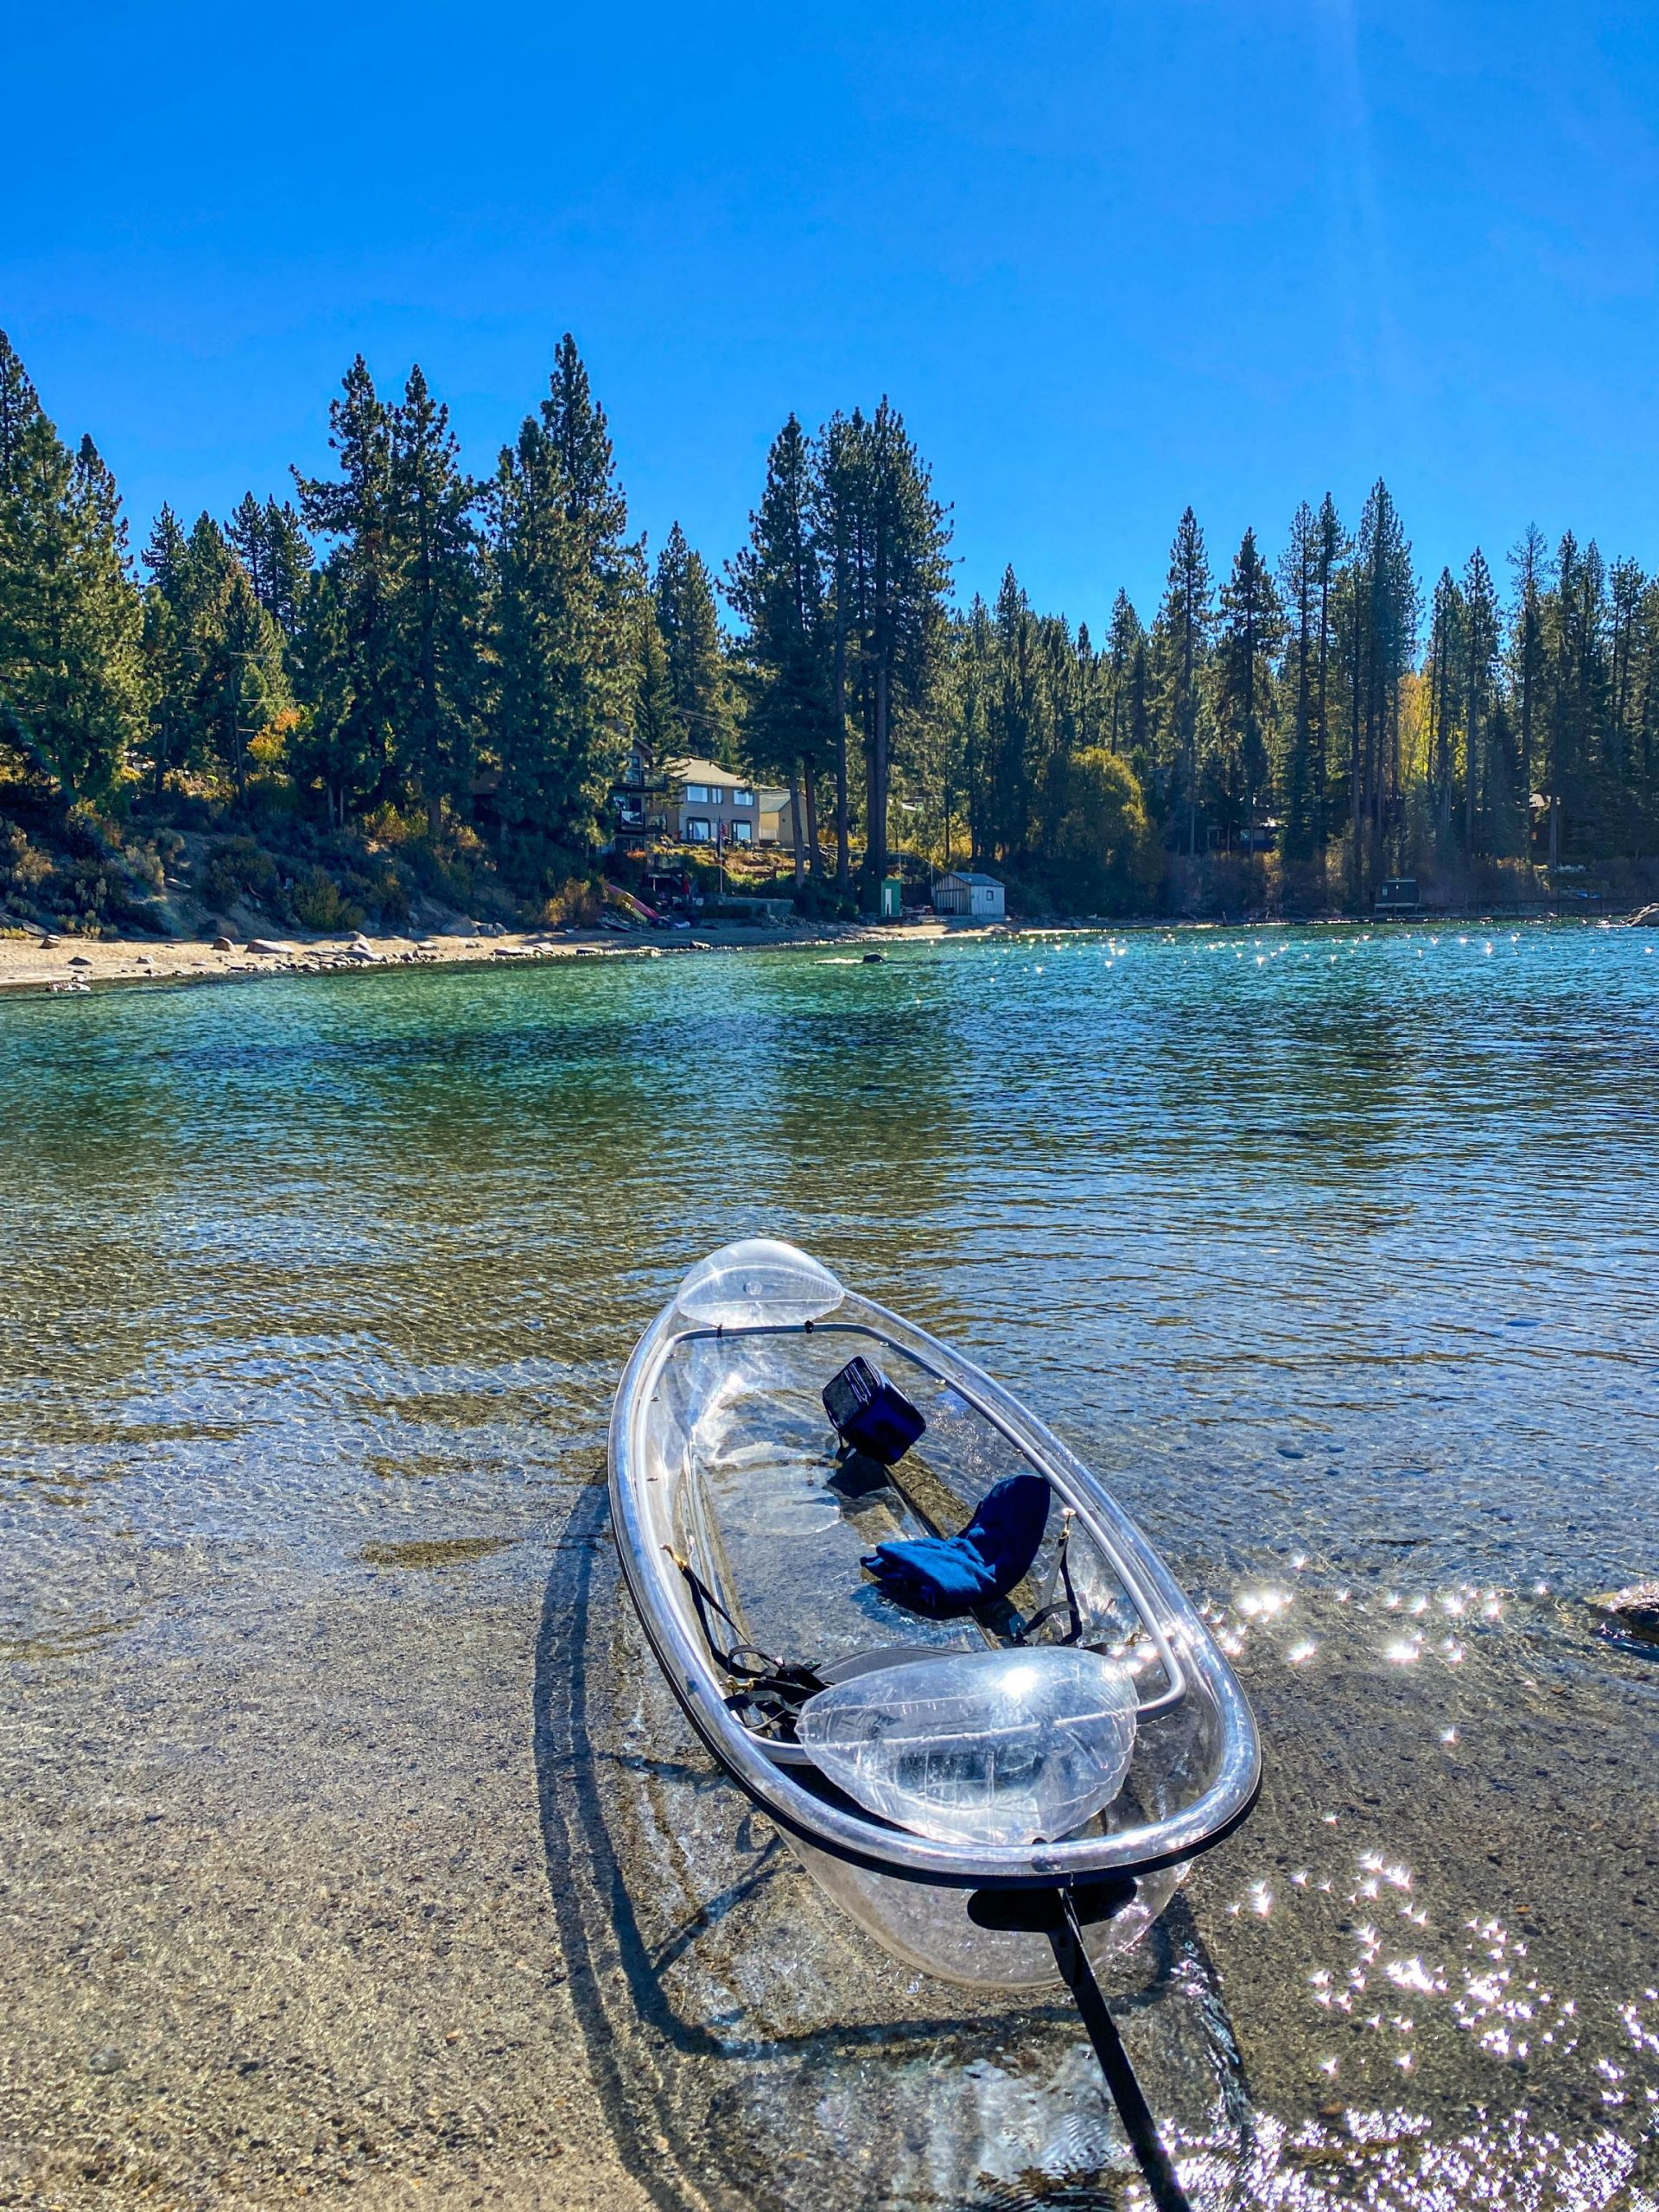 xperiencing the lake on a guided tour in a clear kayak is one of the most unique ways to see the glory of Lake Tahoe!